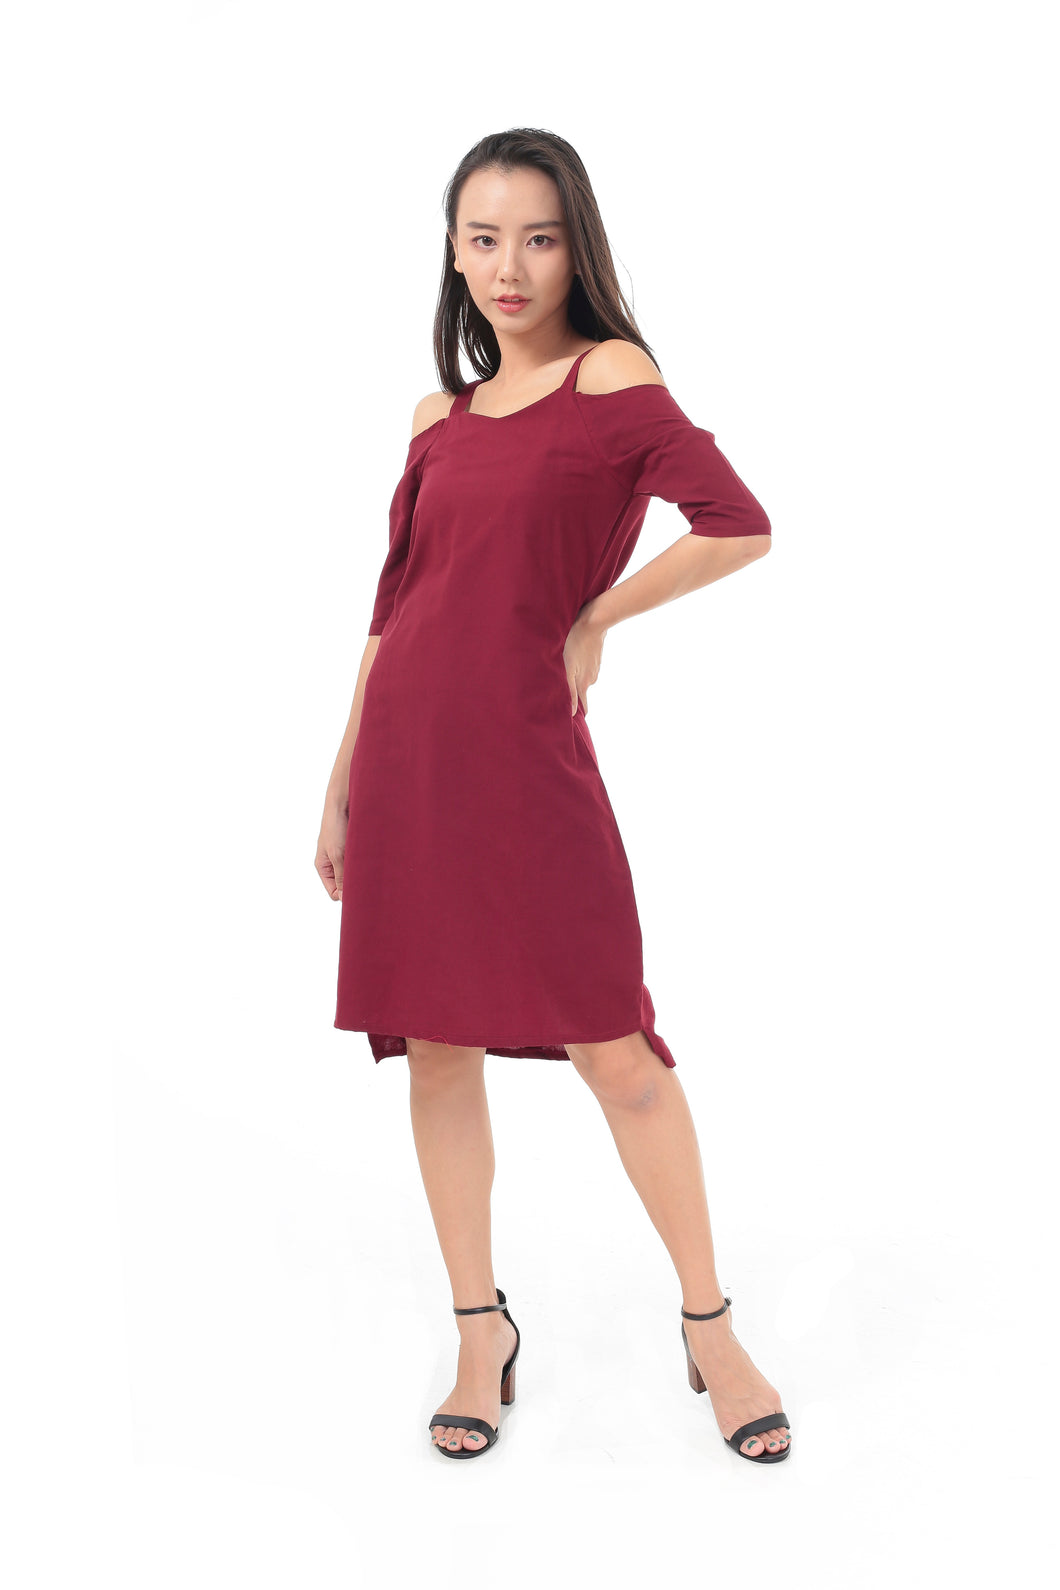 Felix Dress in Maroon